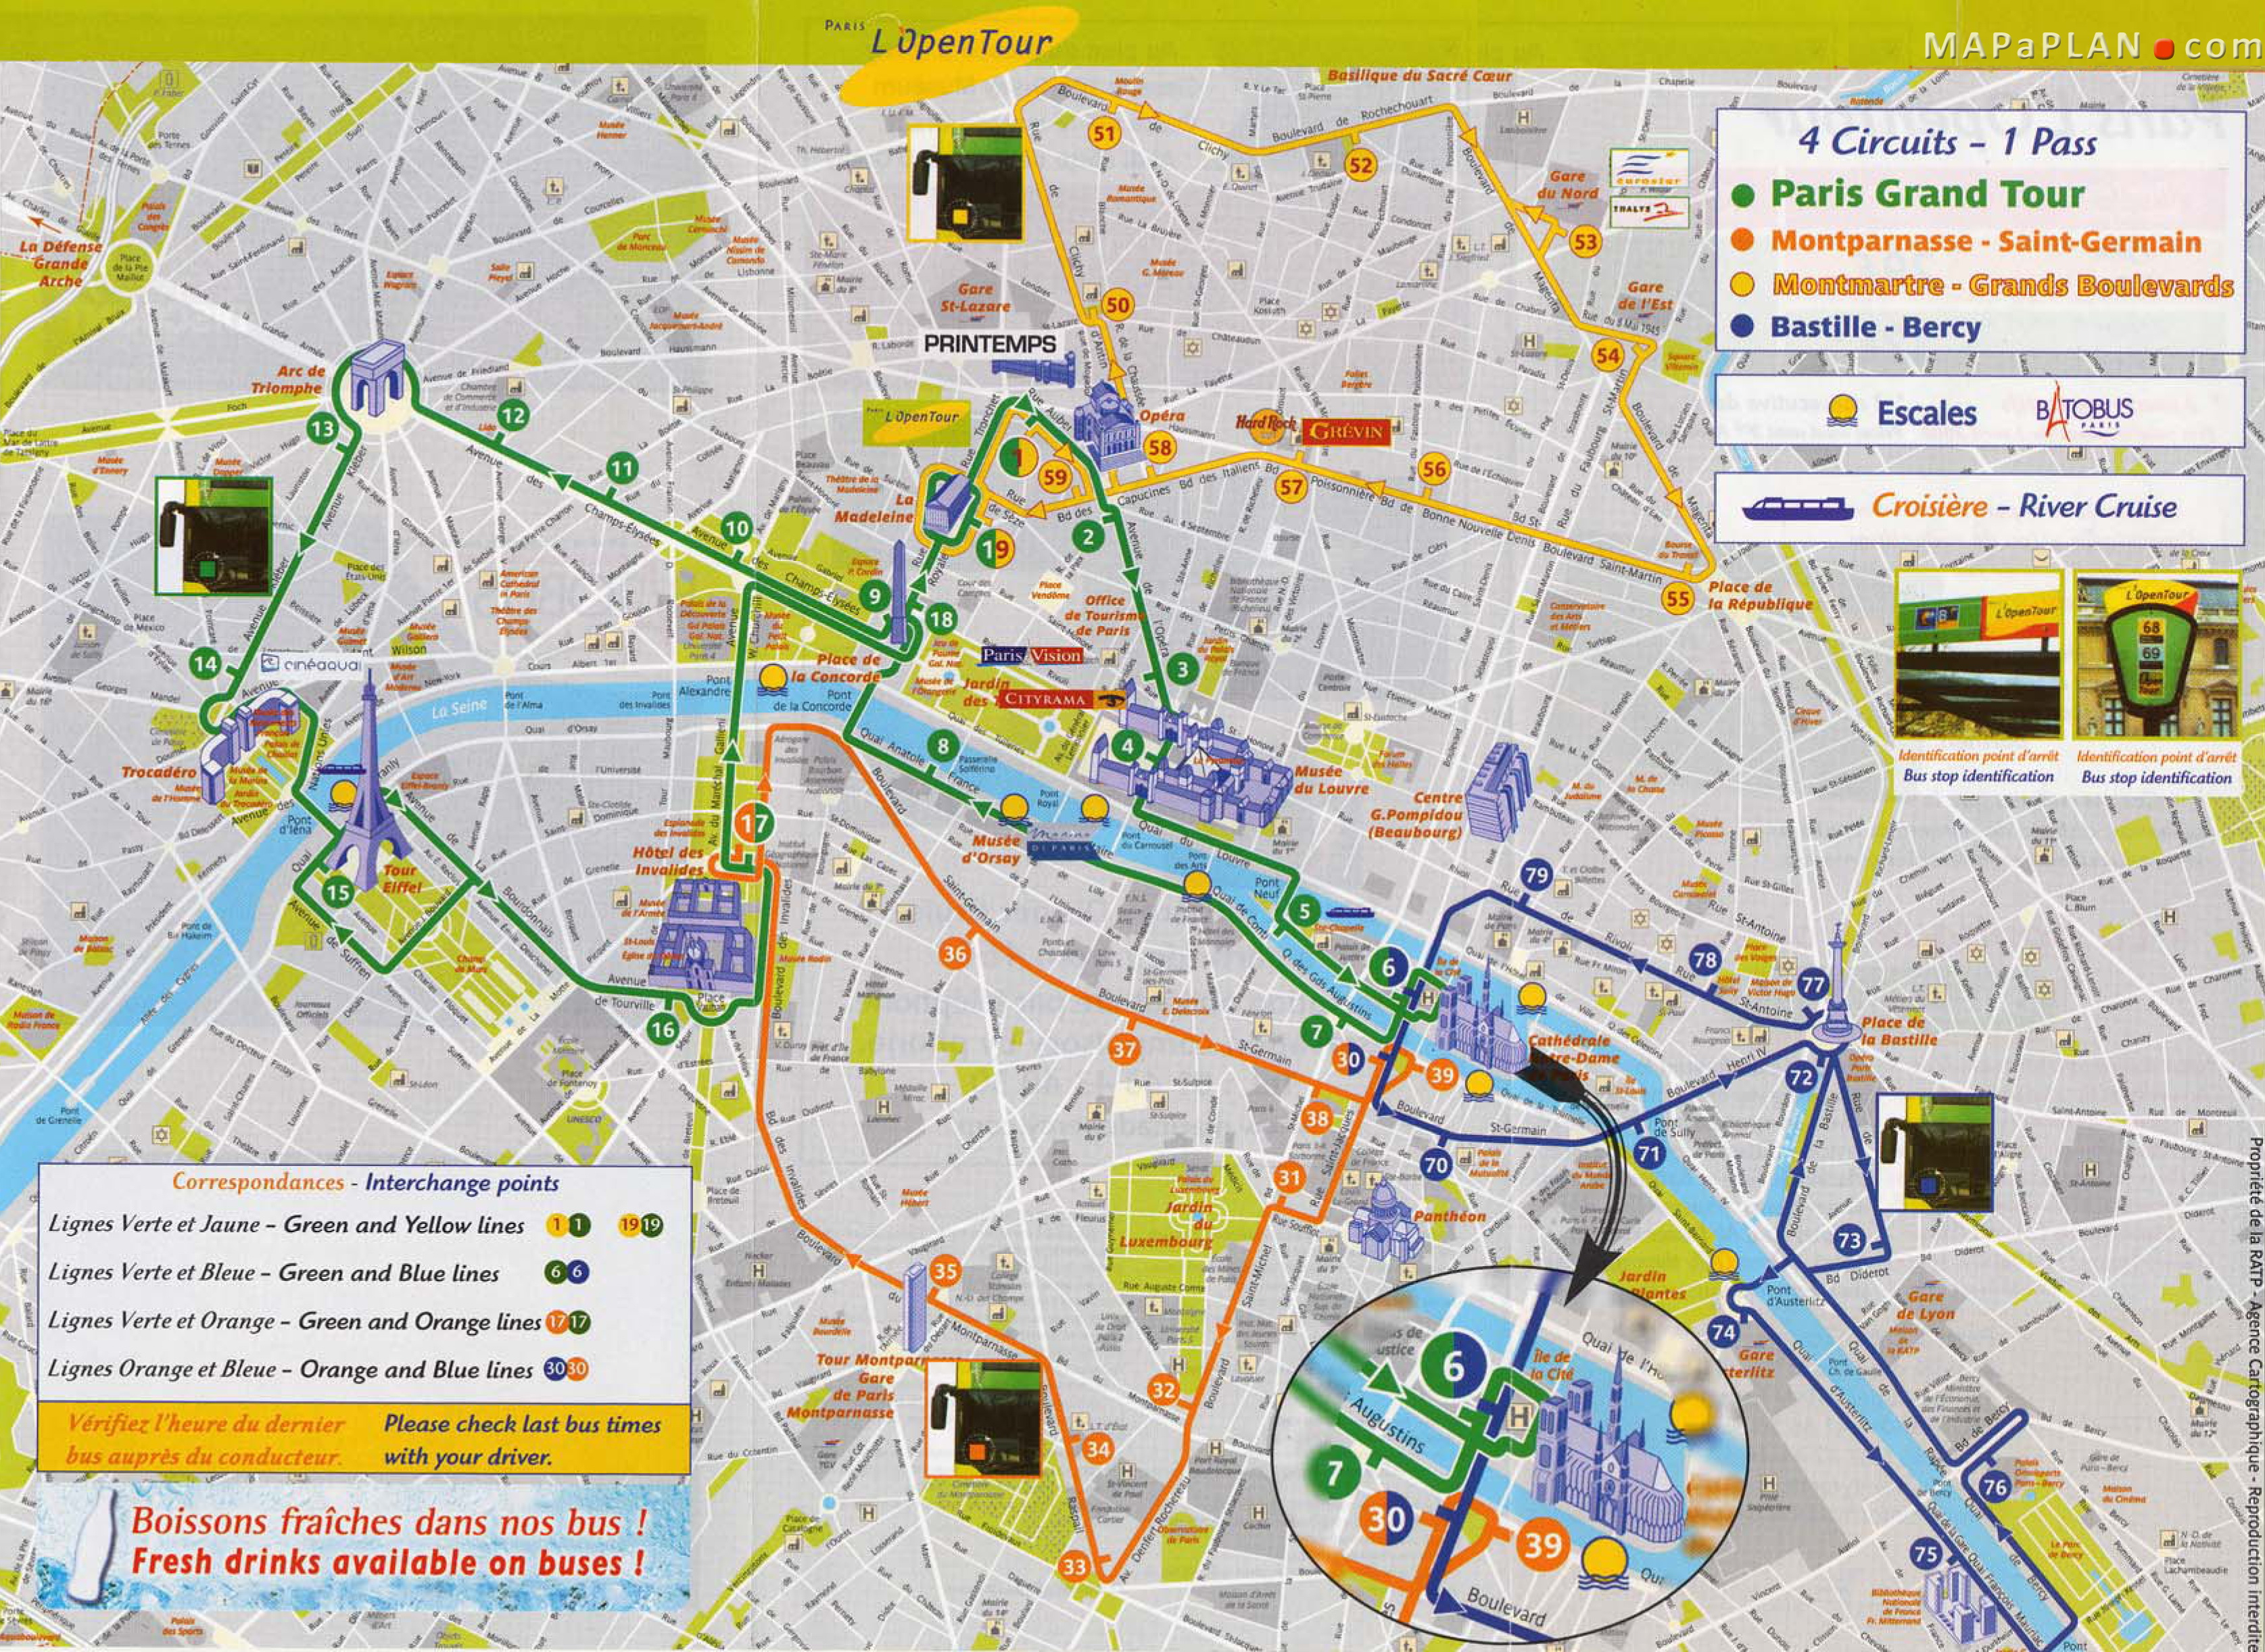 Printable Map Of Paris Download Map Paris And Attractions   Travel - Printable Map Of Paris With Tourist Attractions